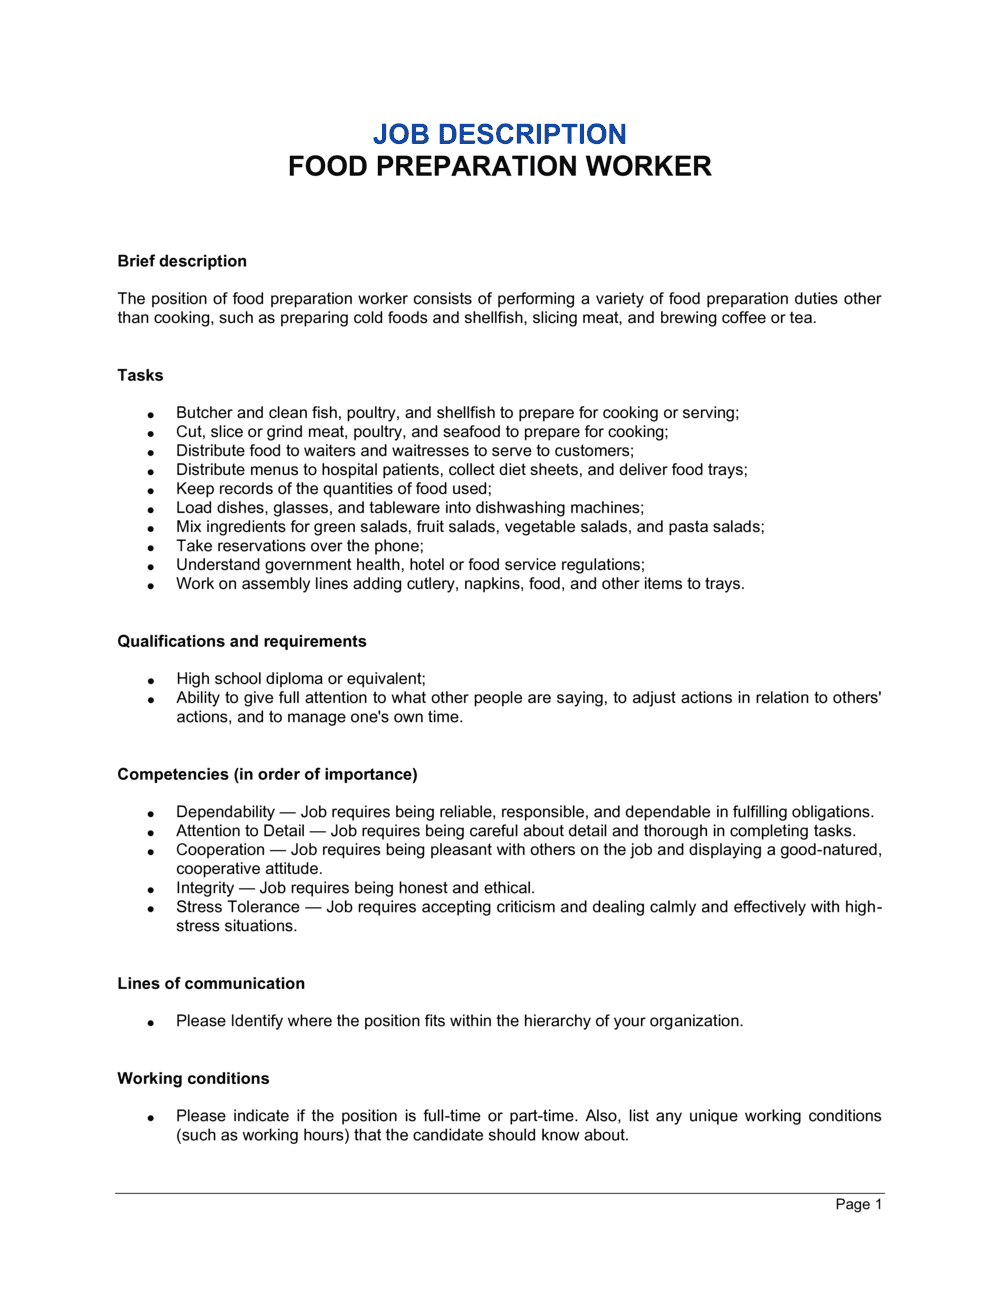 Business-in-a-Box's Food Preparation Worker Job Description Template